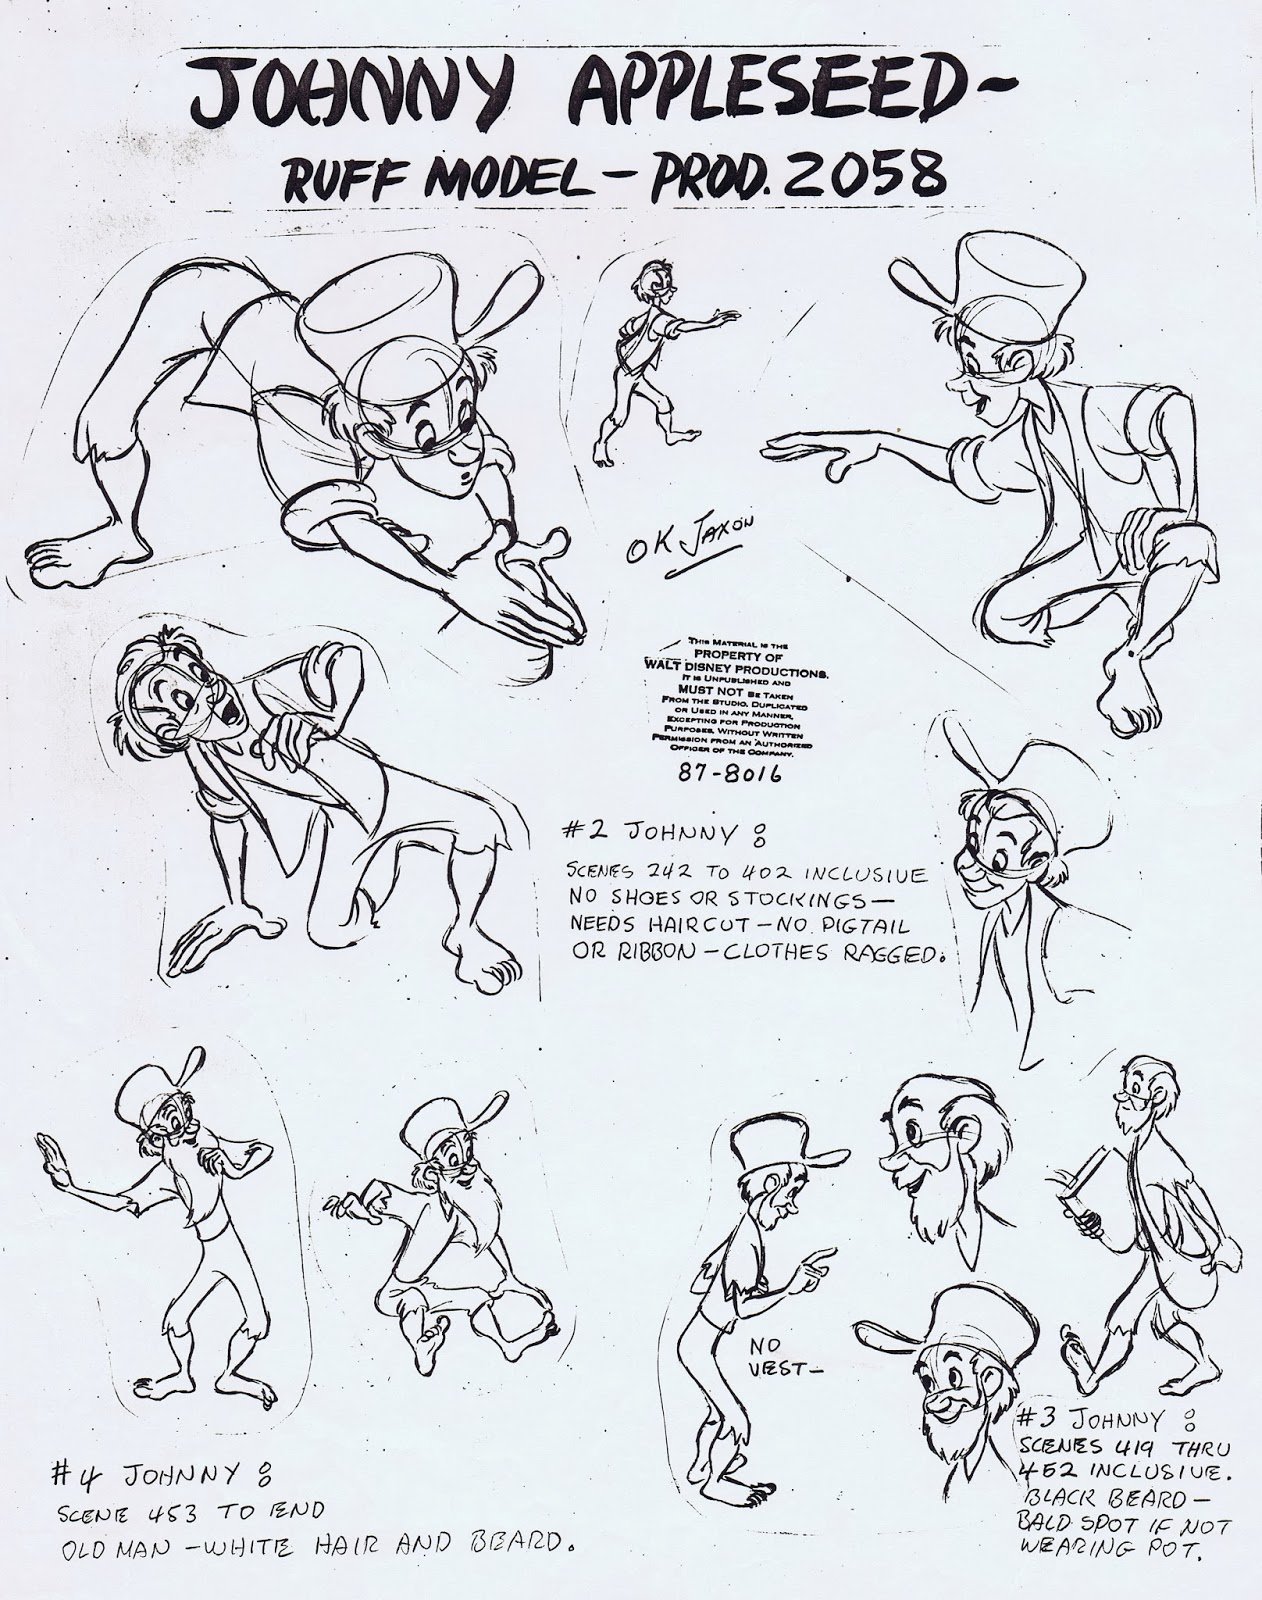 File Kingdom Of The Sun Jaguar Modelsheet02 additionally Disney Wiki New Wordmark as well Donald Duck Coloring Pages besides Triplettroublex tumblr moreover New Year011. on new huey dewey and louie